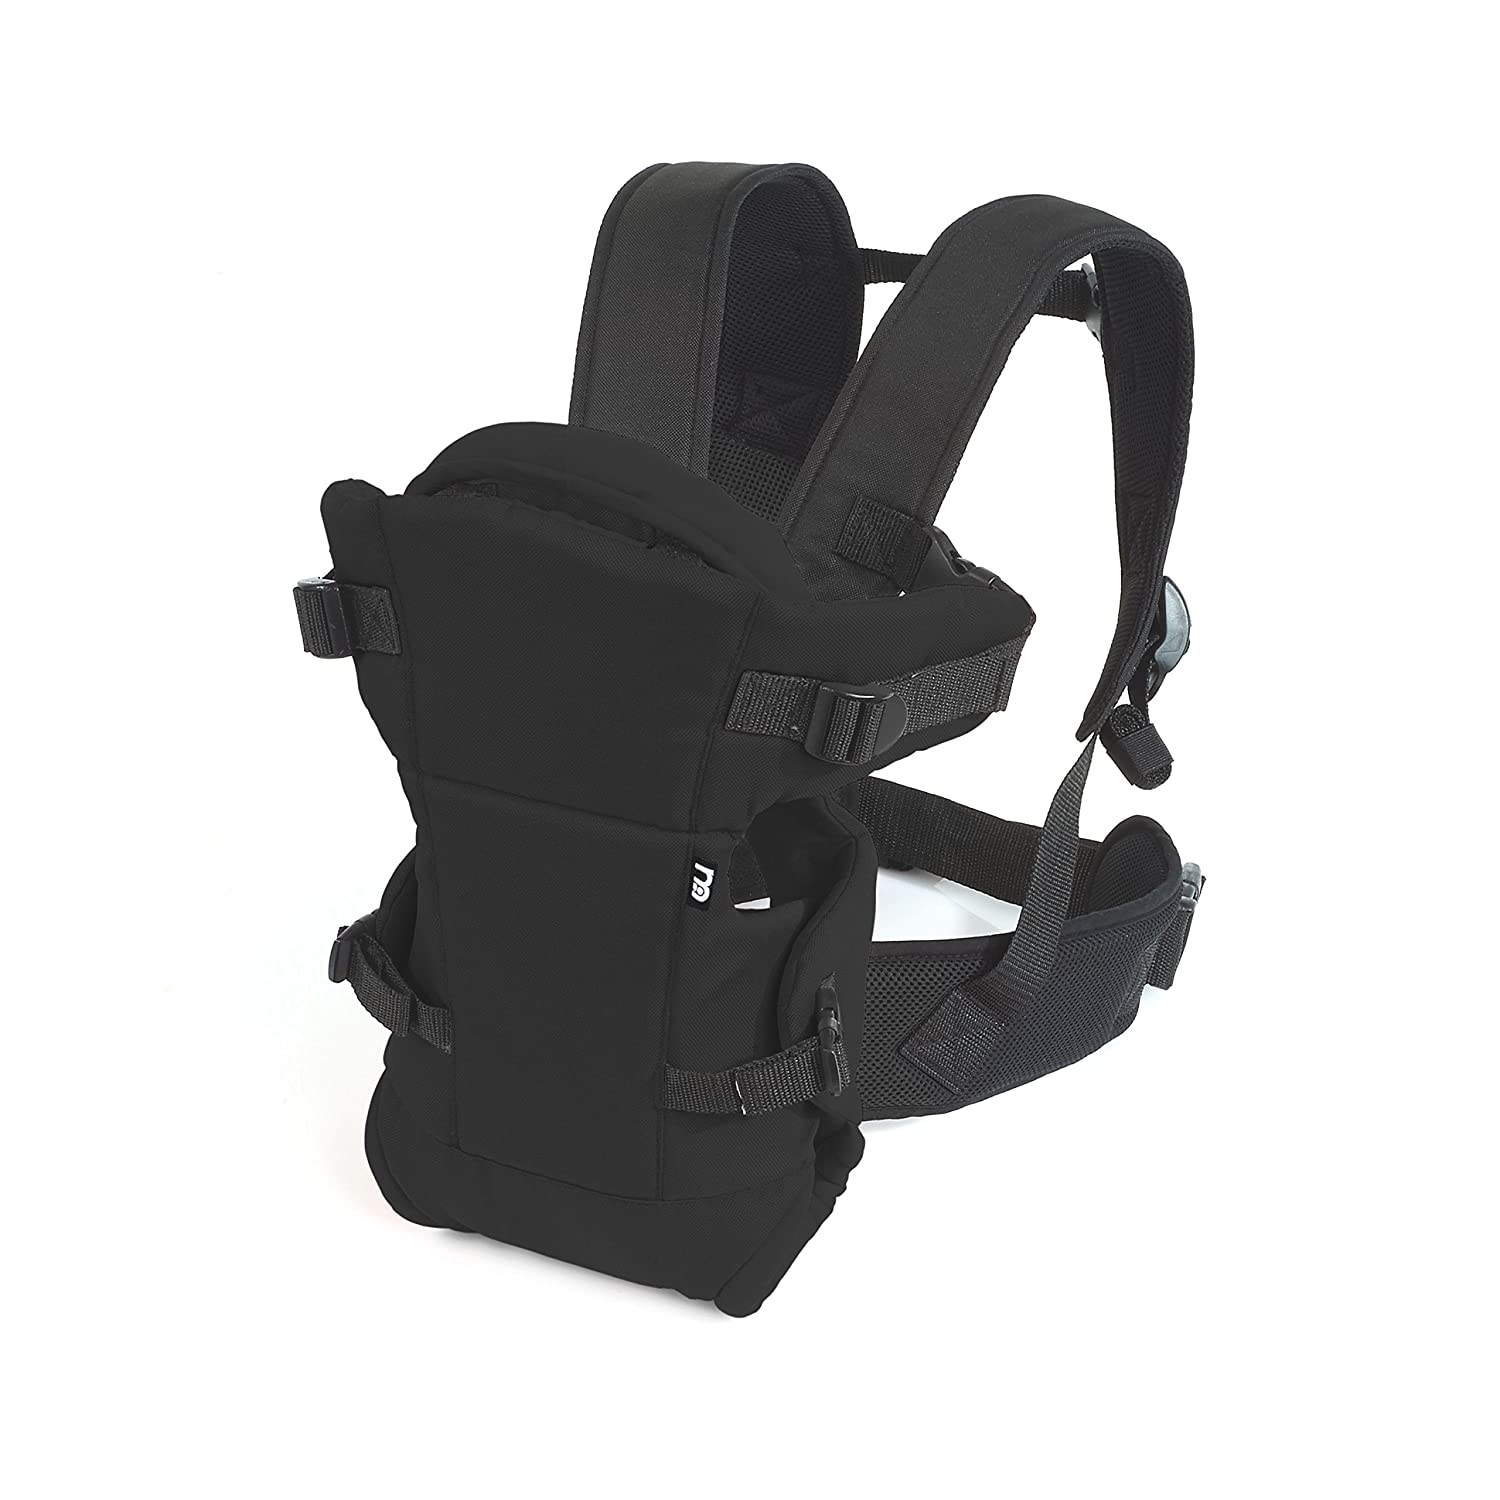 a894dafed24 Mothercare Three Position Baby Carrier (Black)  Amazon.co.uk  Baby